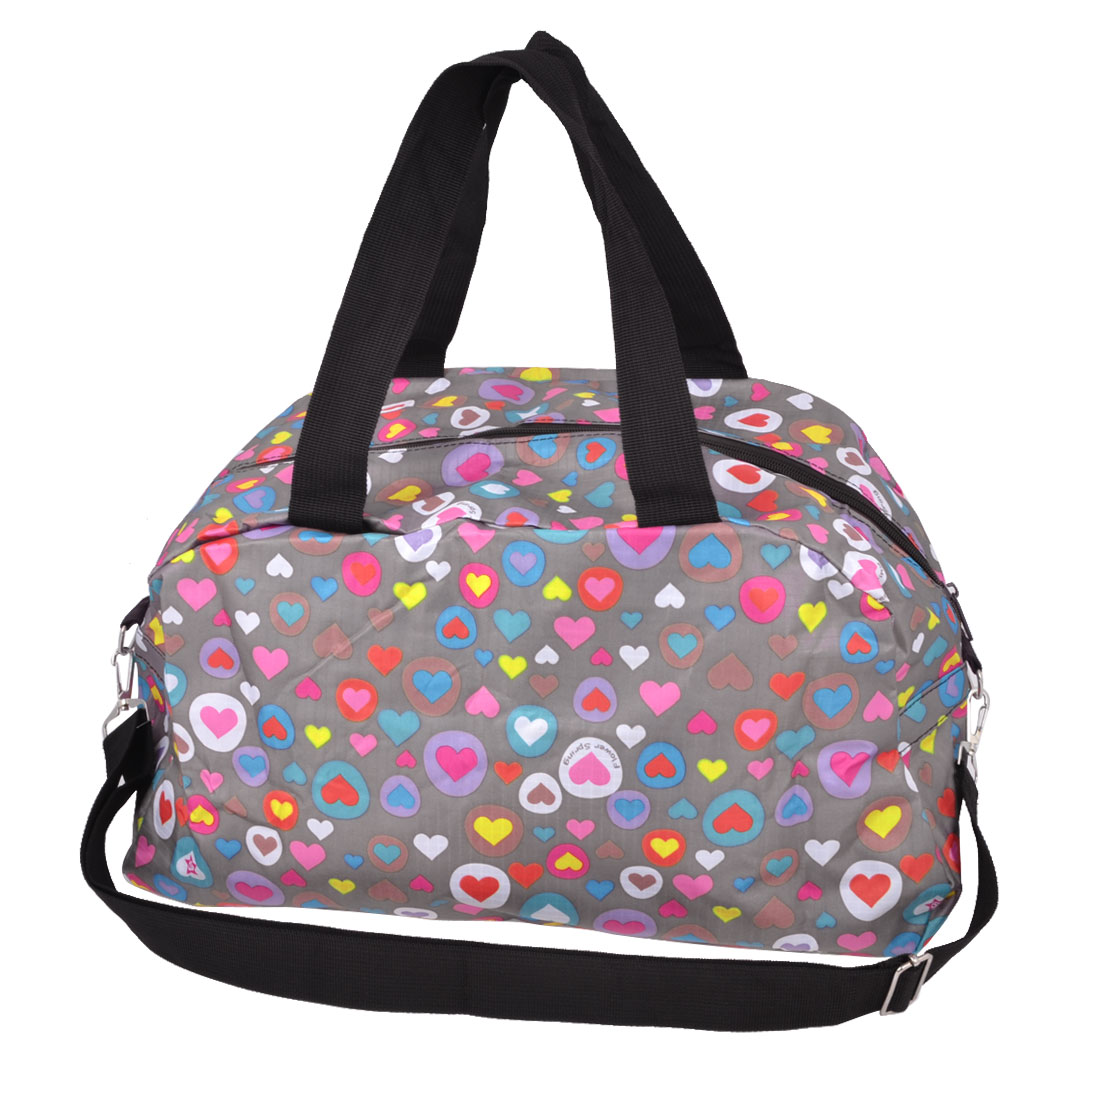 Traveling Household Foldable Hearts Print Zipper Closure Clothes Storage Bag Holder Luggage Pouch Colorful 41x24x19cm